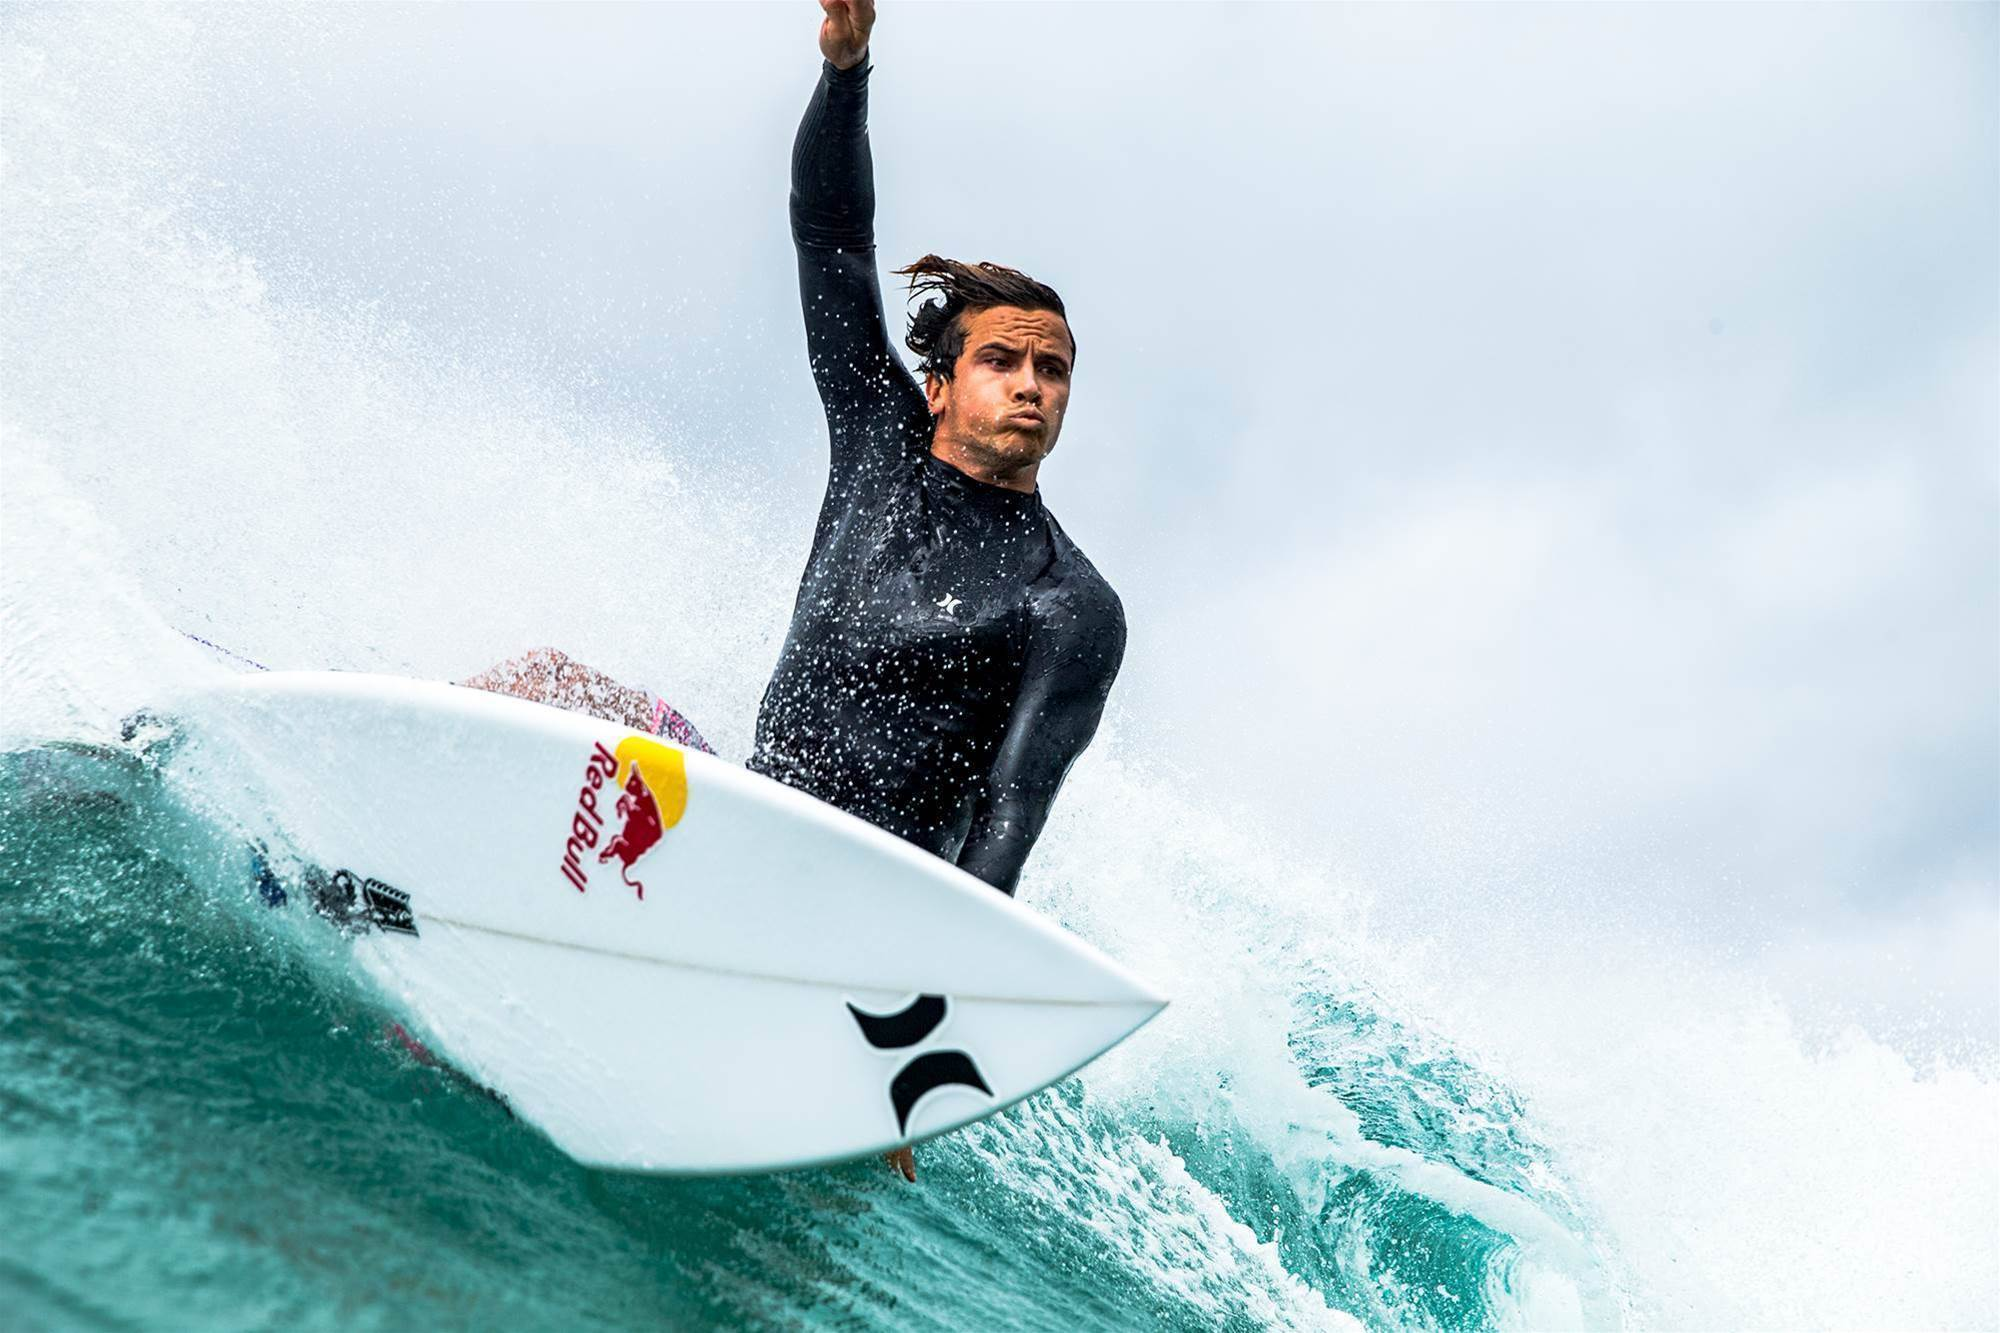 Who Will Fire at Trestles?